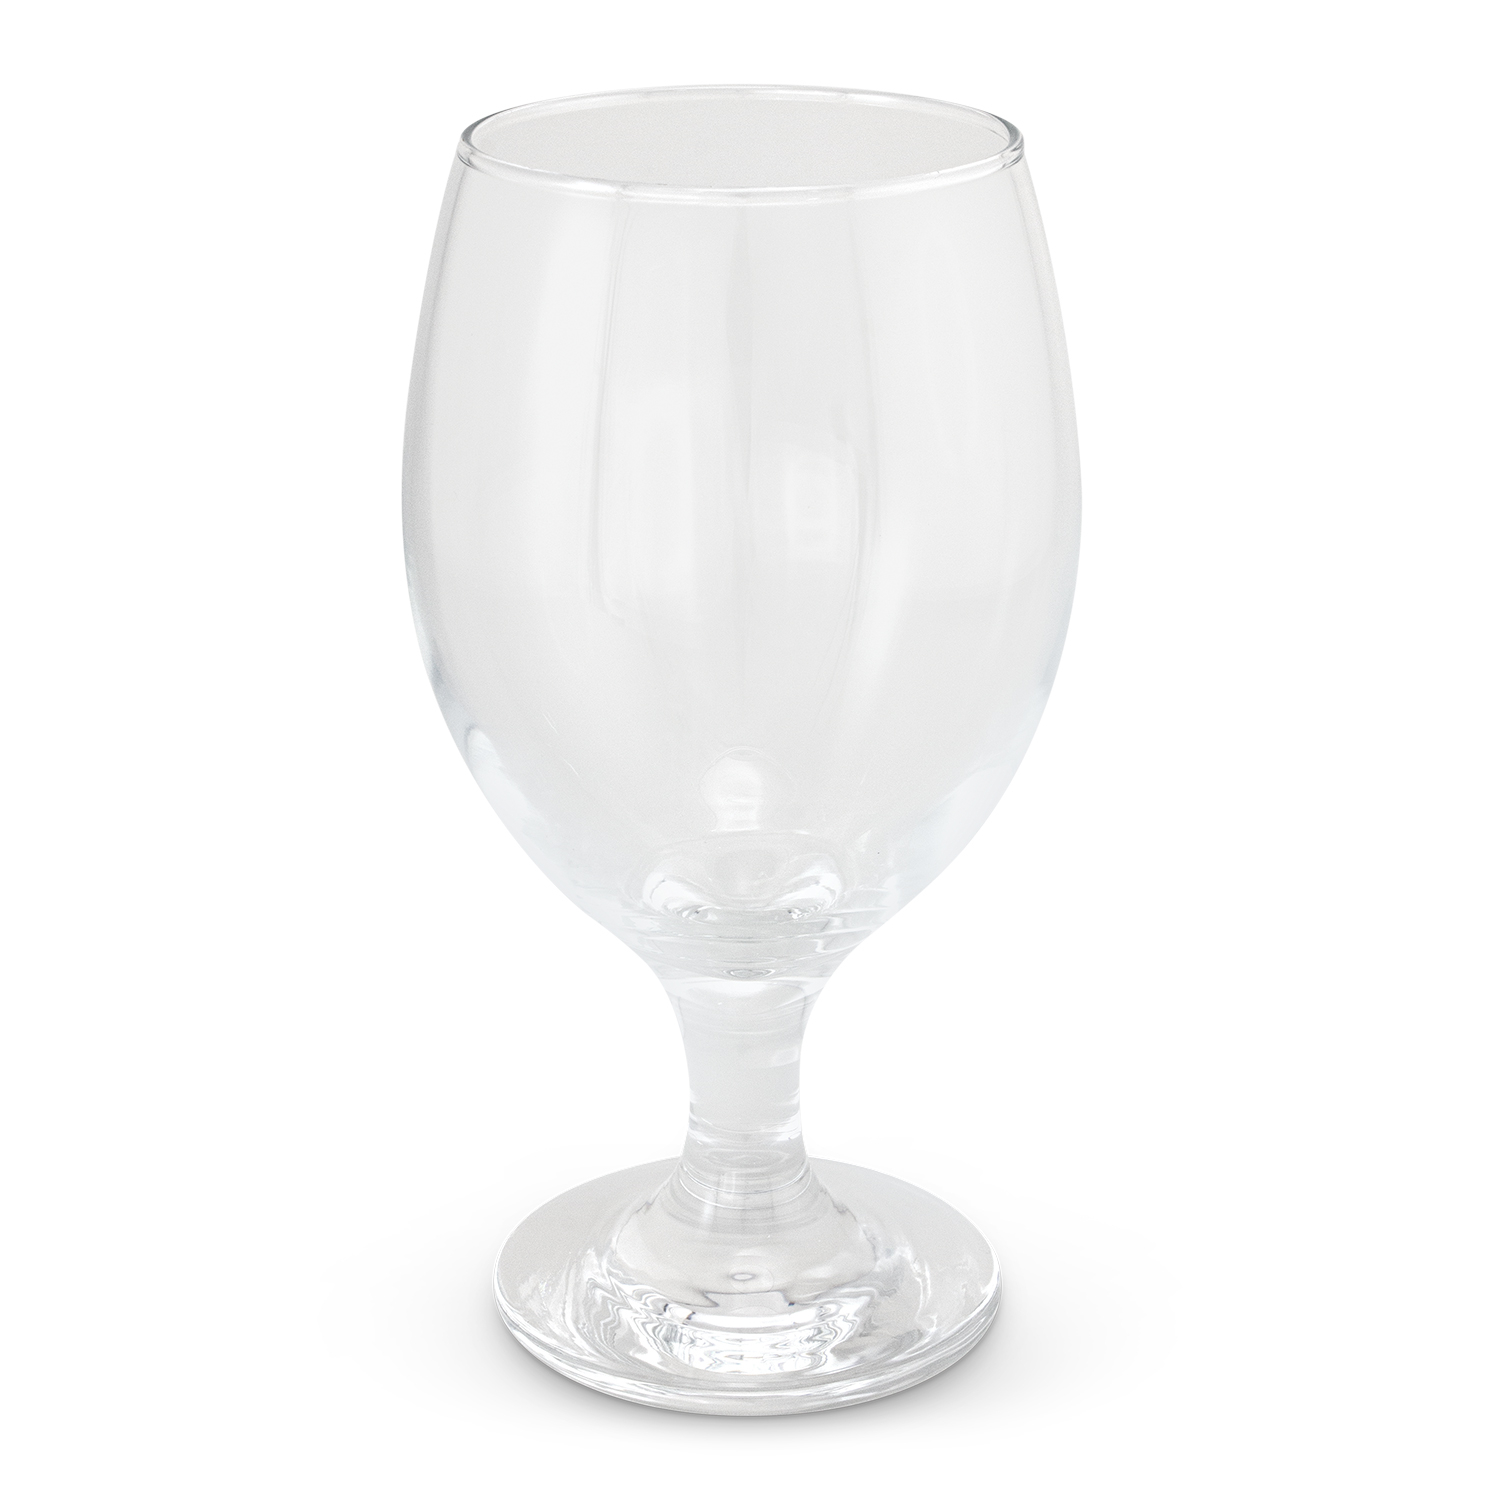 Maldive Beer Glass